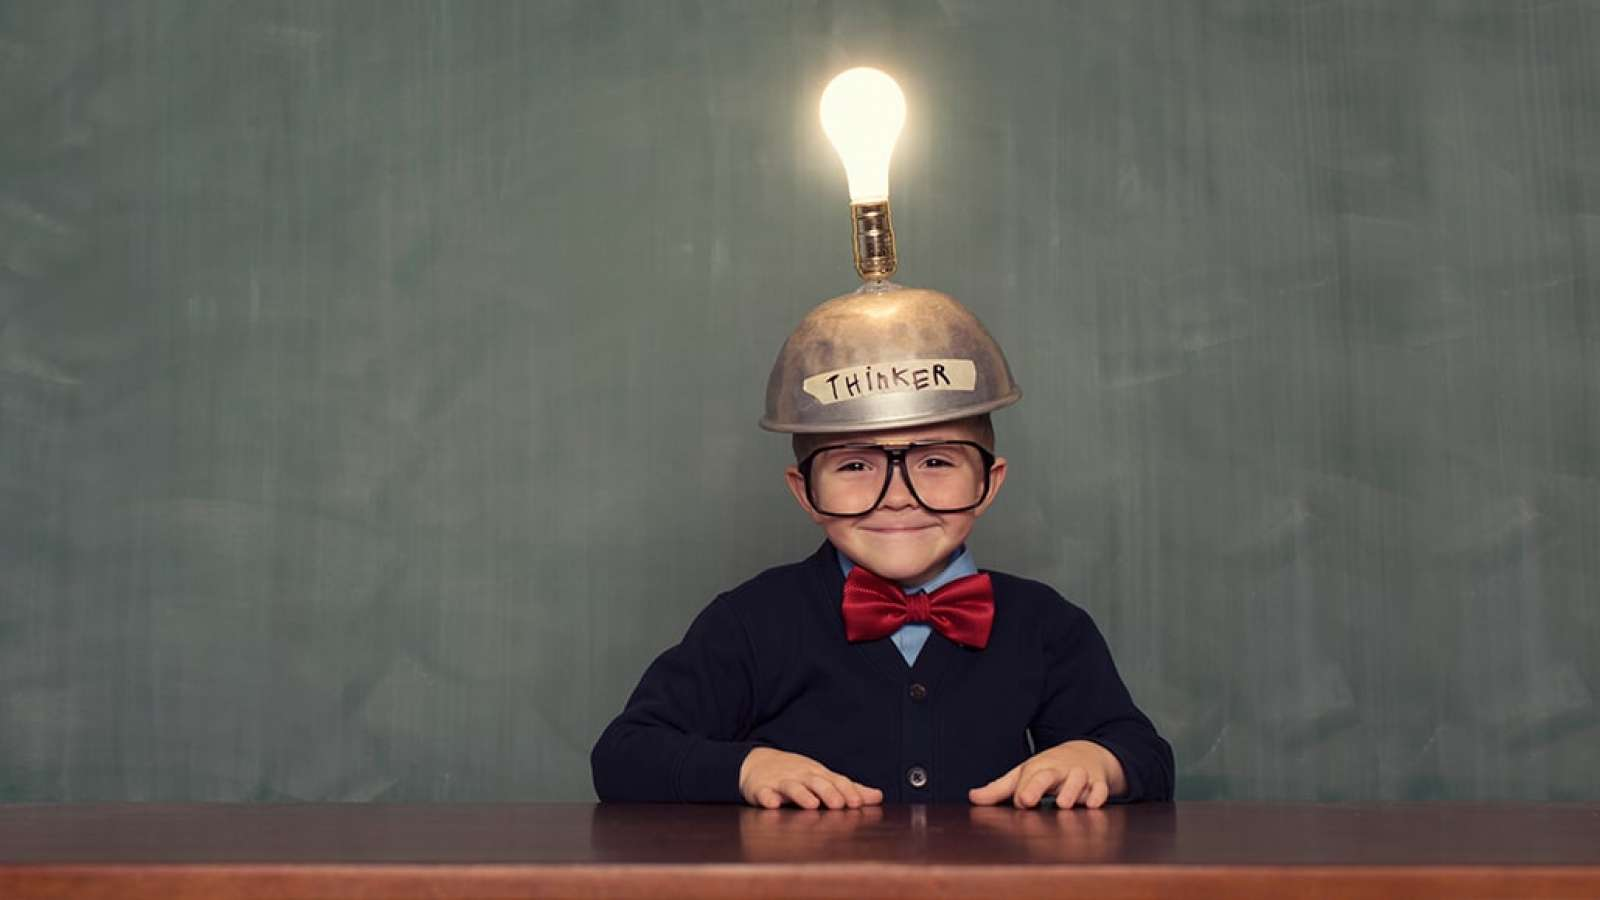 boy at table with thinker hat and light bulb